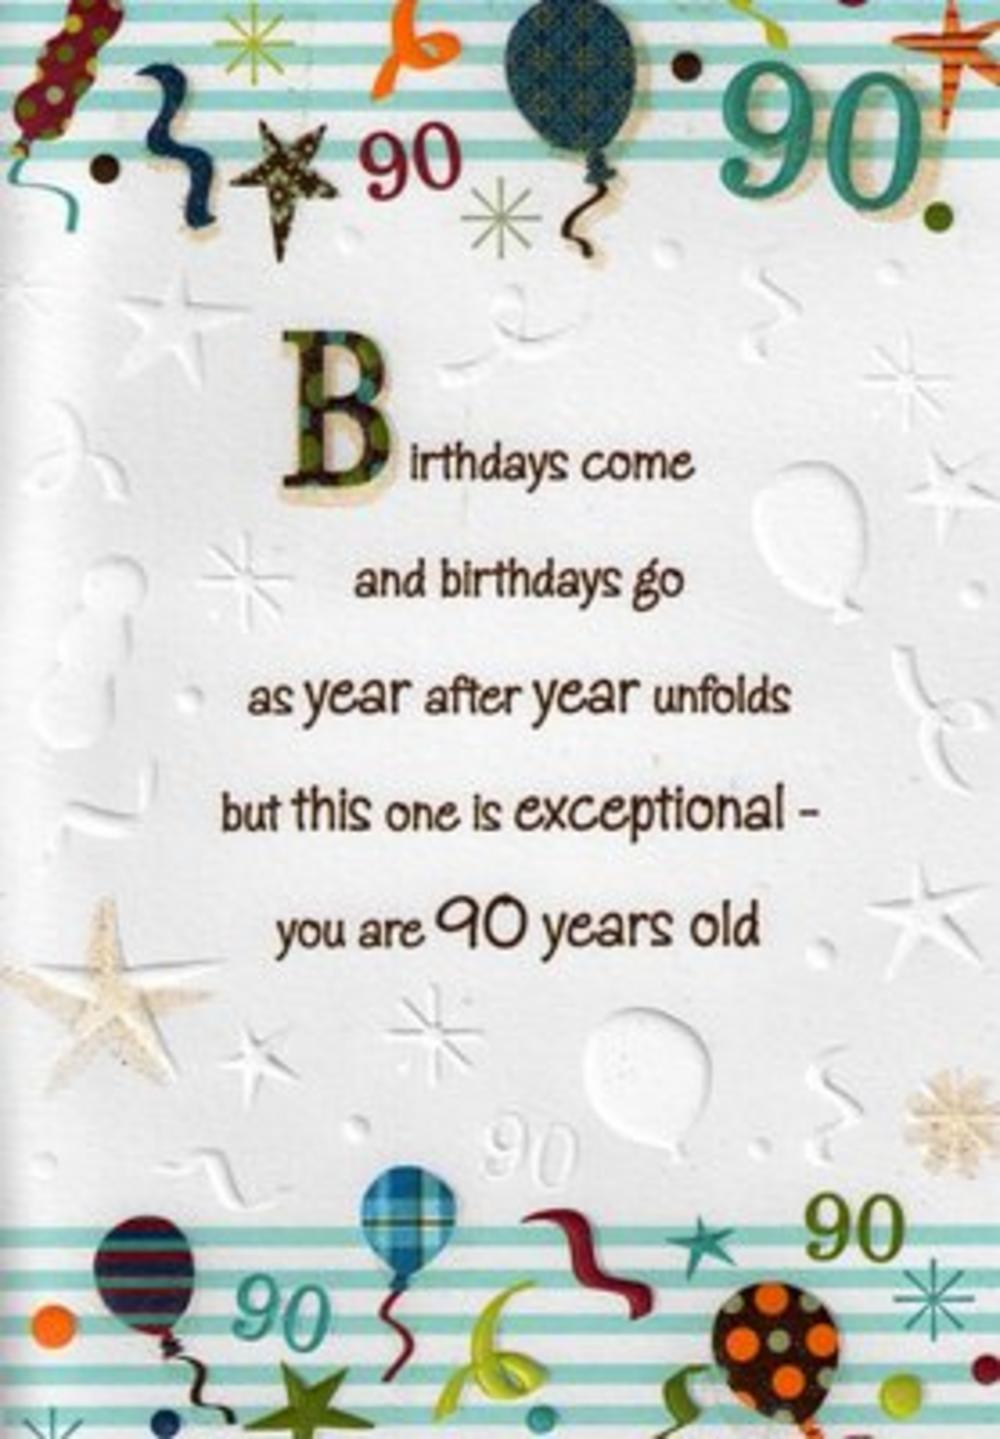 90th birthday greeting card messages ; b36ca73cbaafc17f9d1857f2016da184